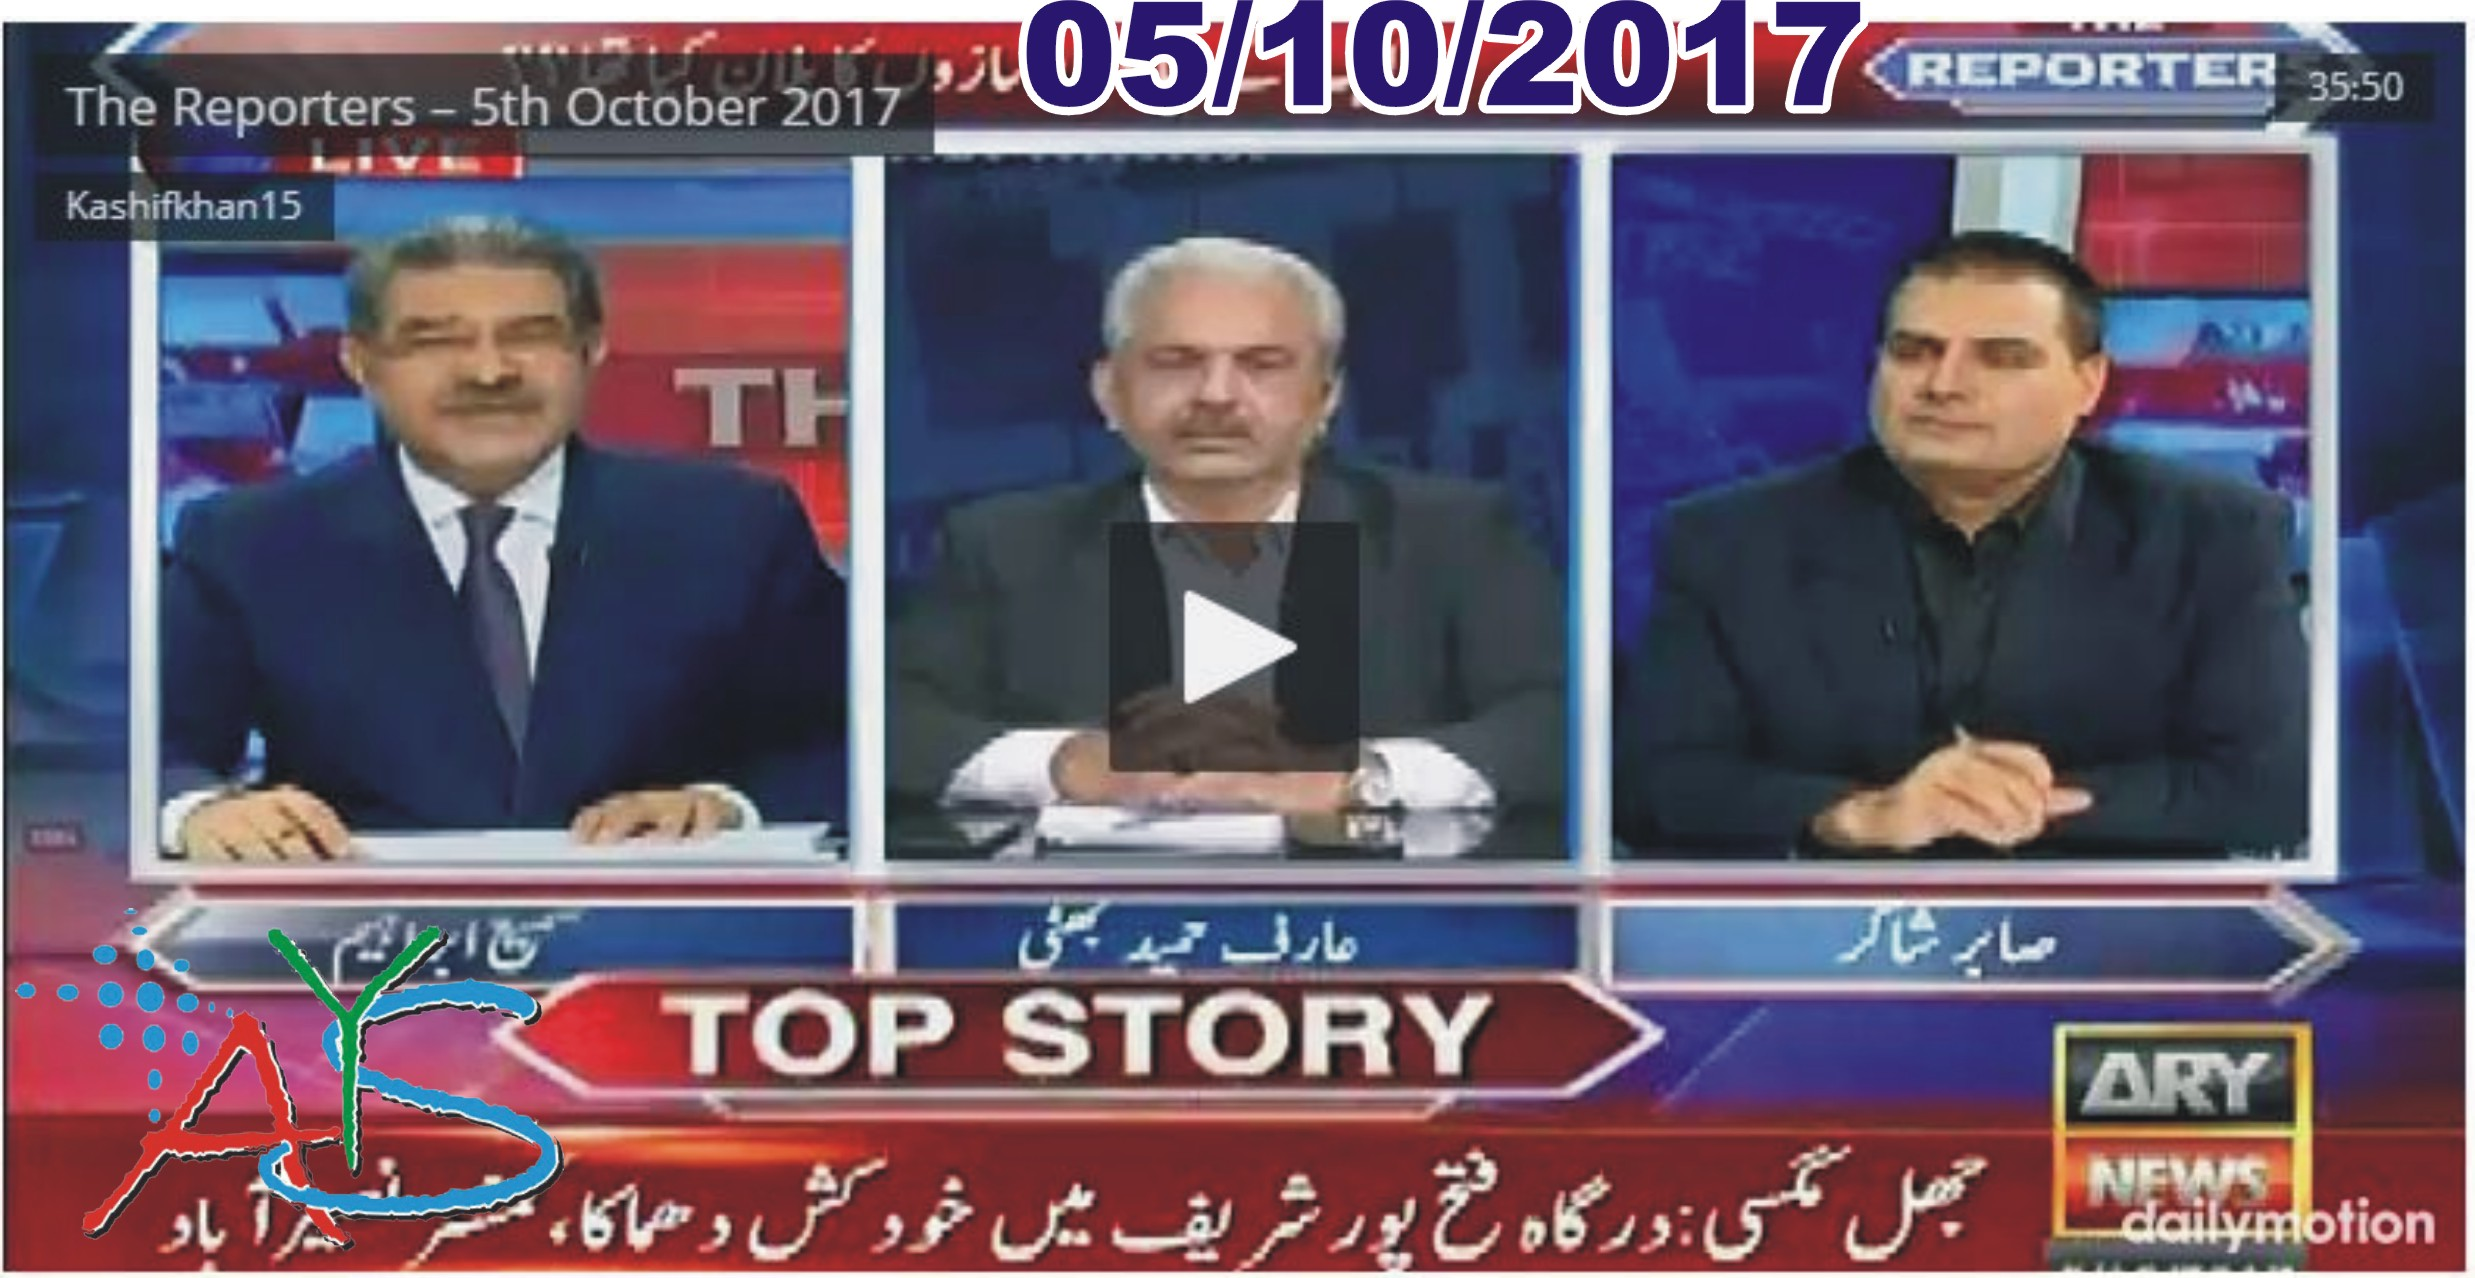 05 Oct 2017 - The Reporters – 5th October 2017